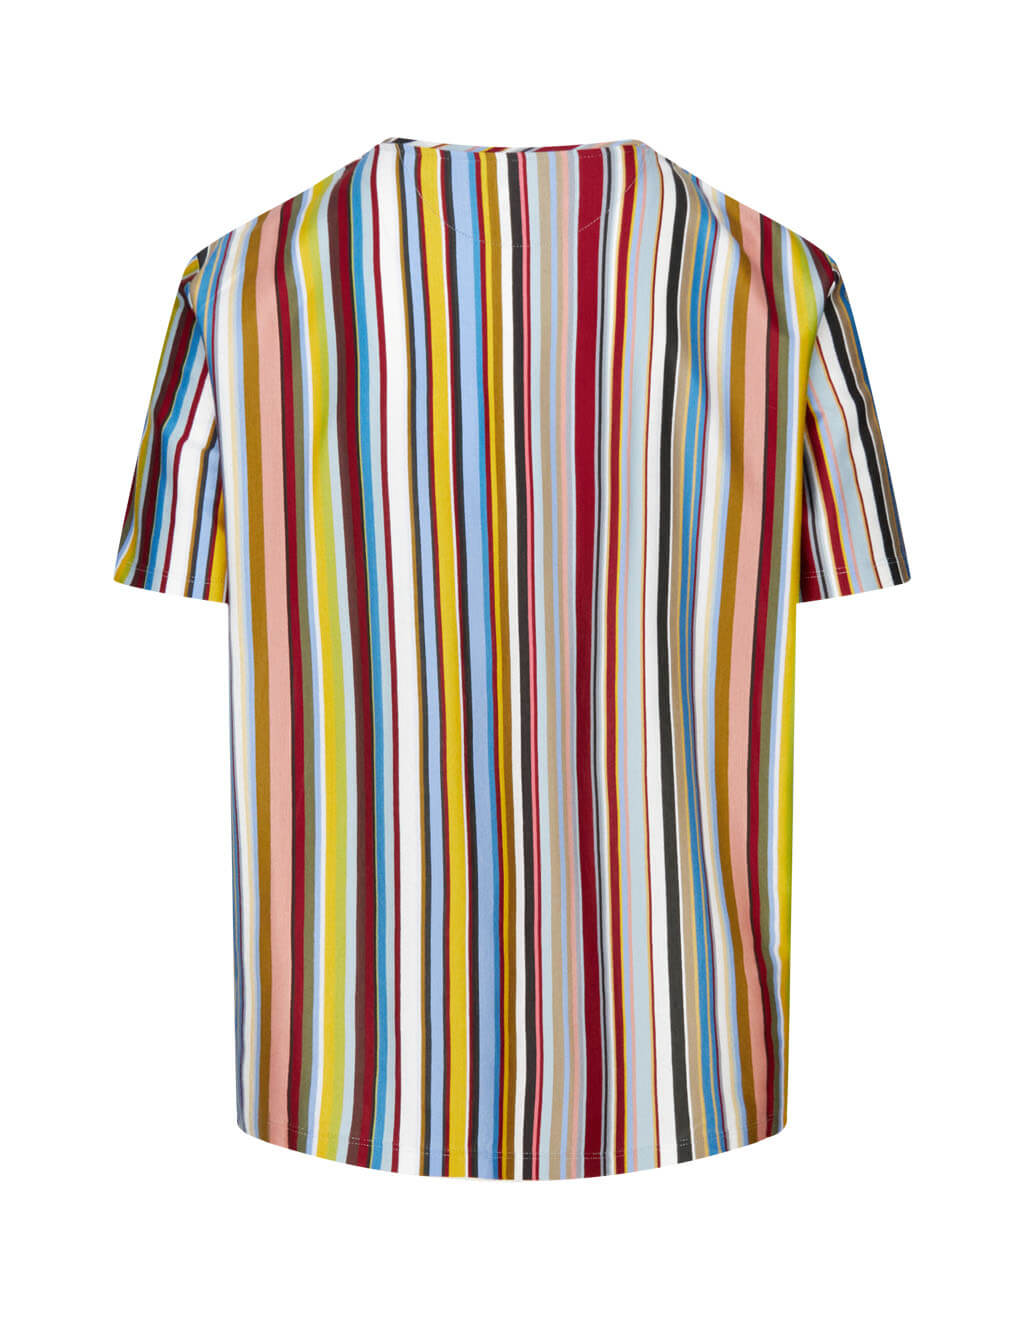 Men's Multicolour Paul Smith Striped T-Shirt M1R-919T-E01176-92